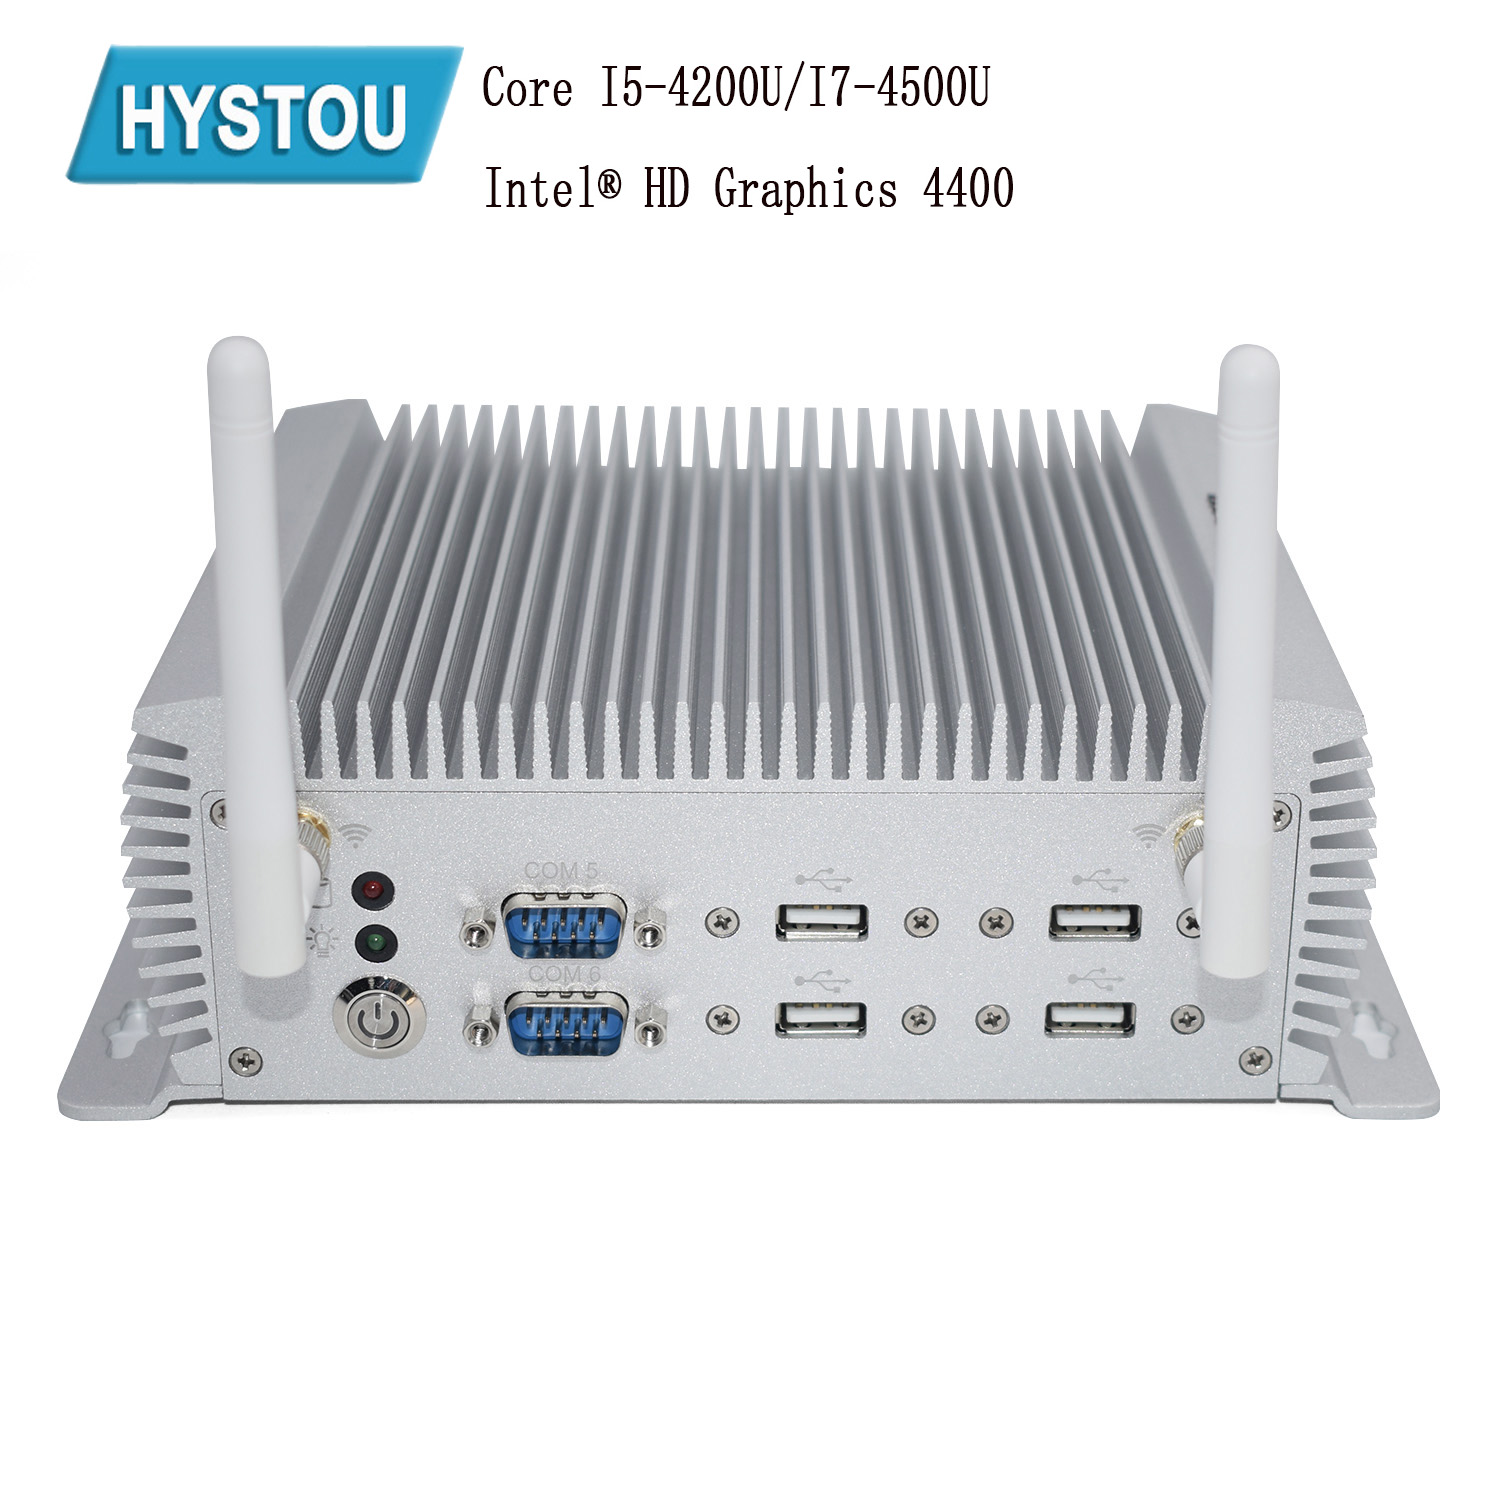 Hystou 2019 New Coming Mini Pc Dual Nuc I7 4500U I5 4200u Windows 10 Linux Pfsence Fanless Industrial Computer Rs232 R485 Com